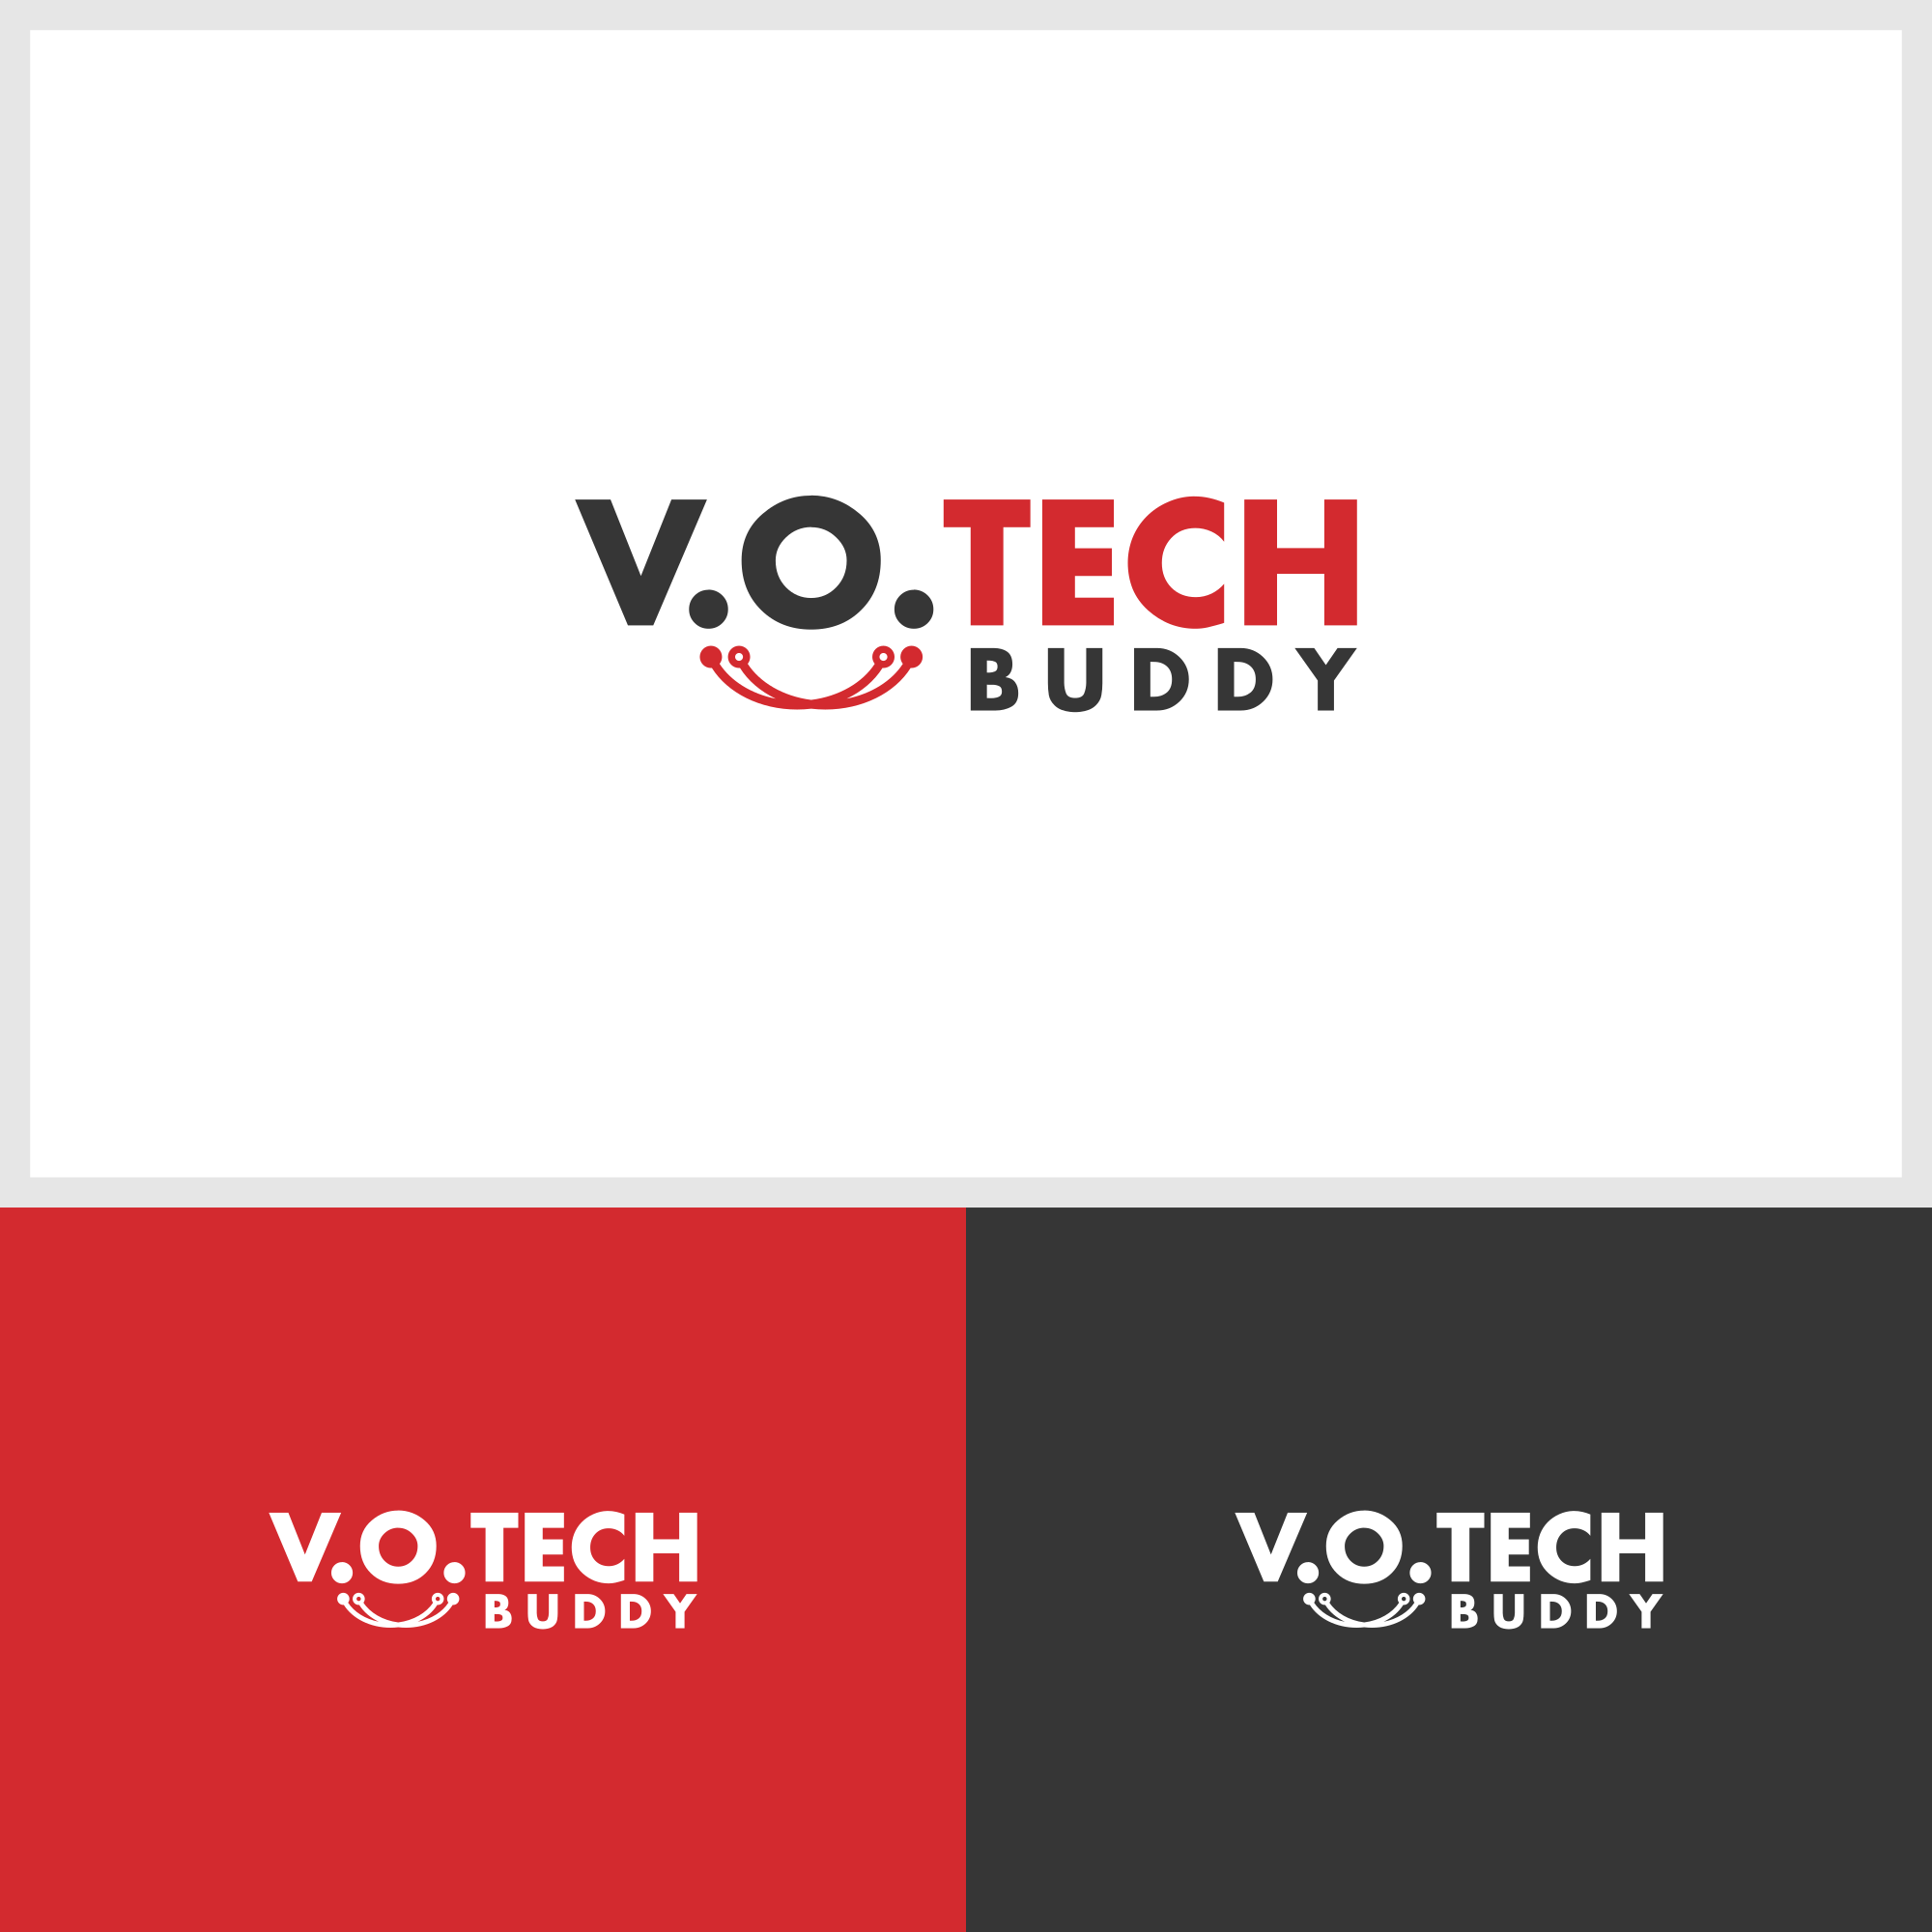 I need a kick-ass logo for my Voice Over support business!